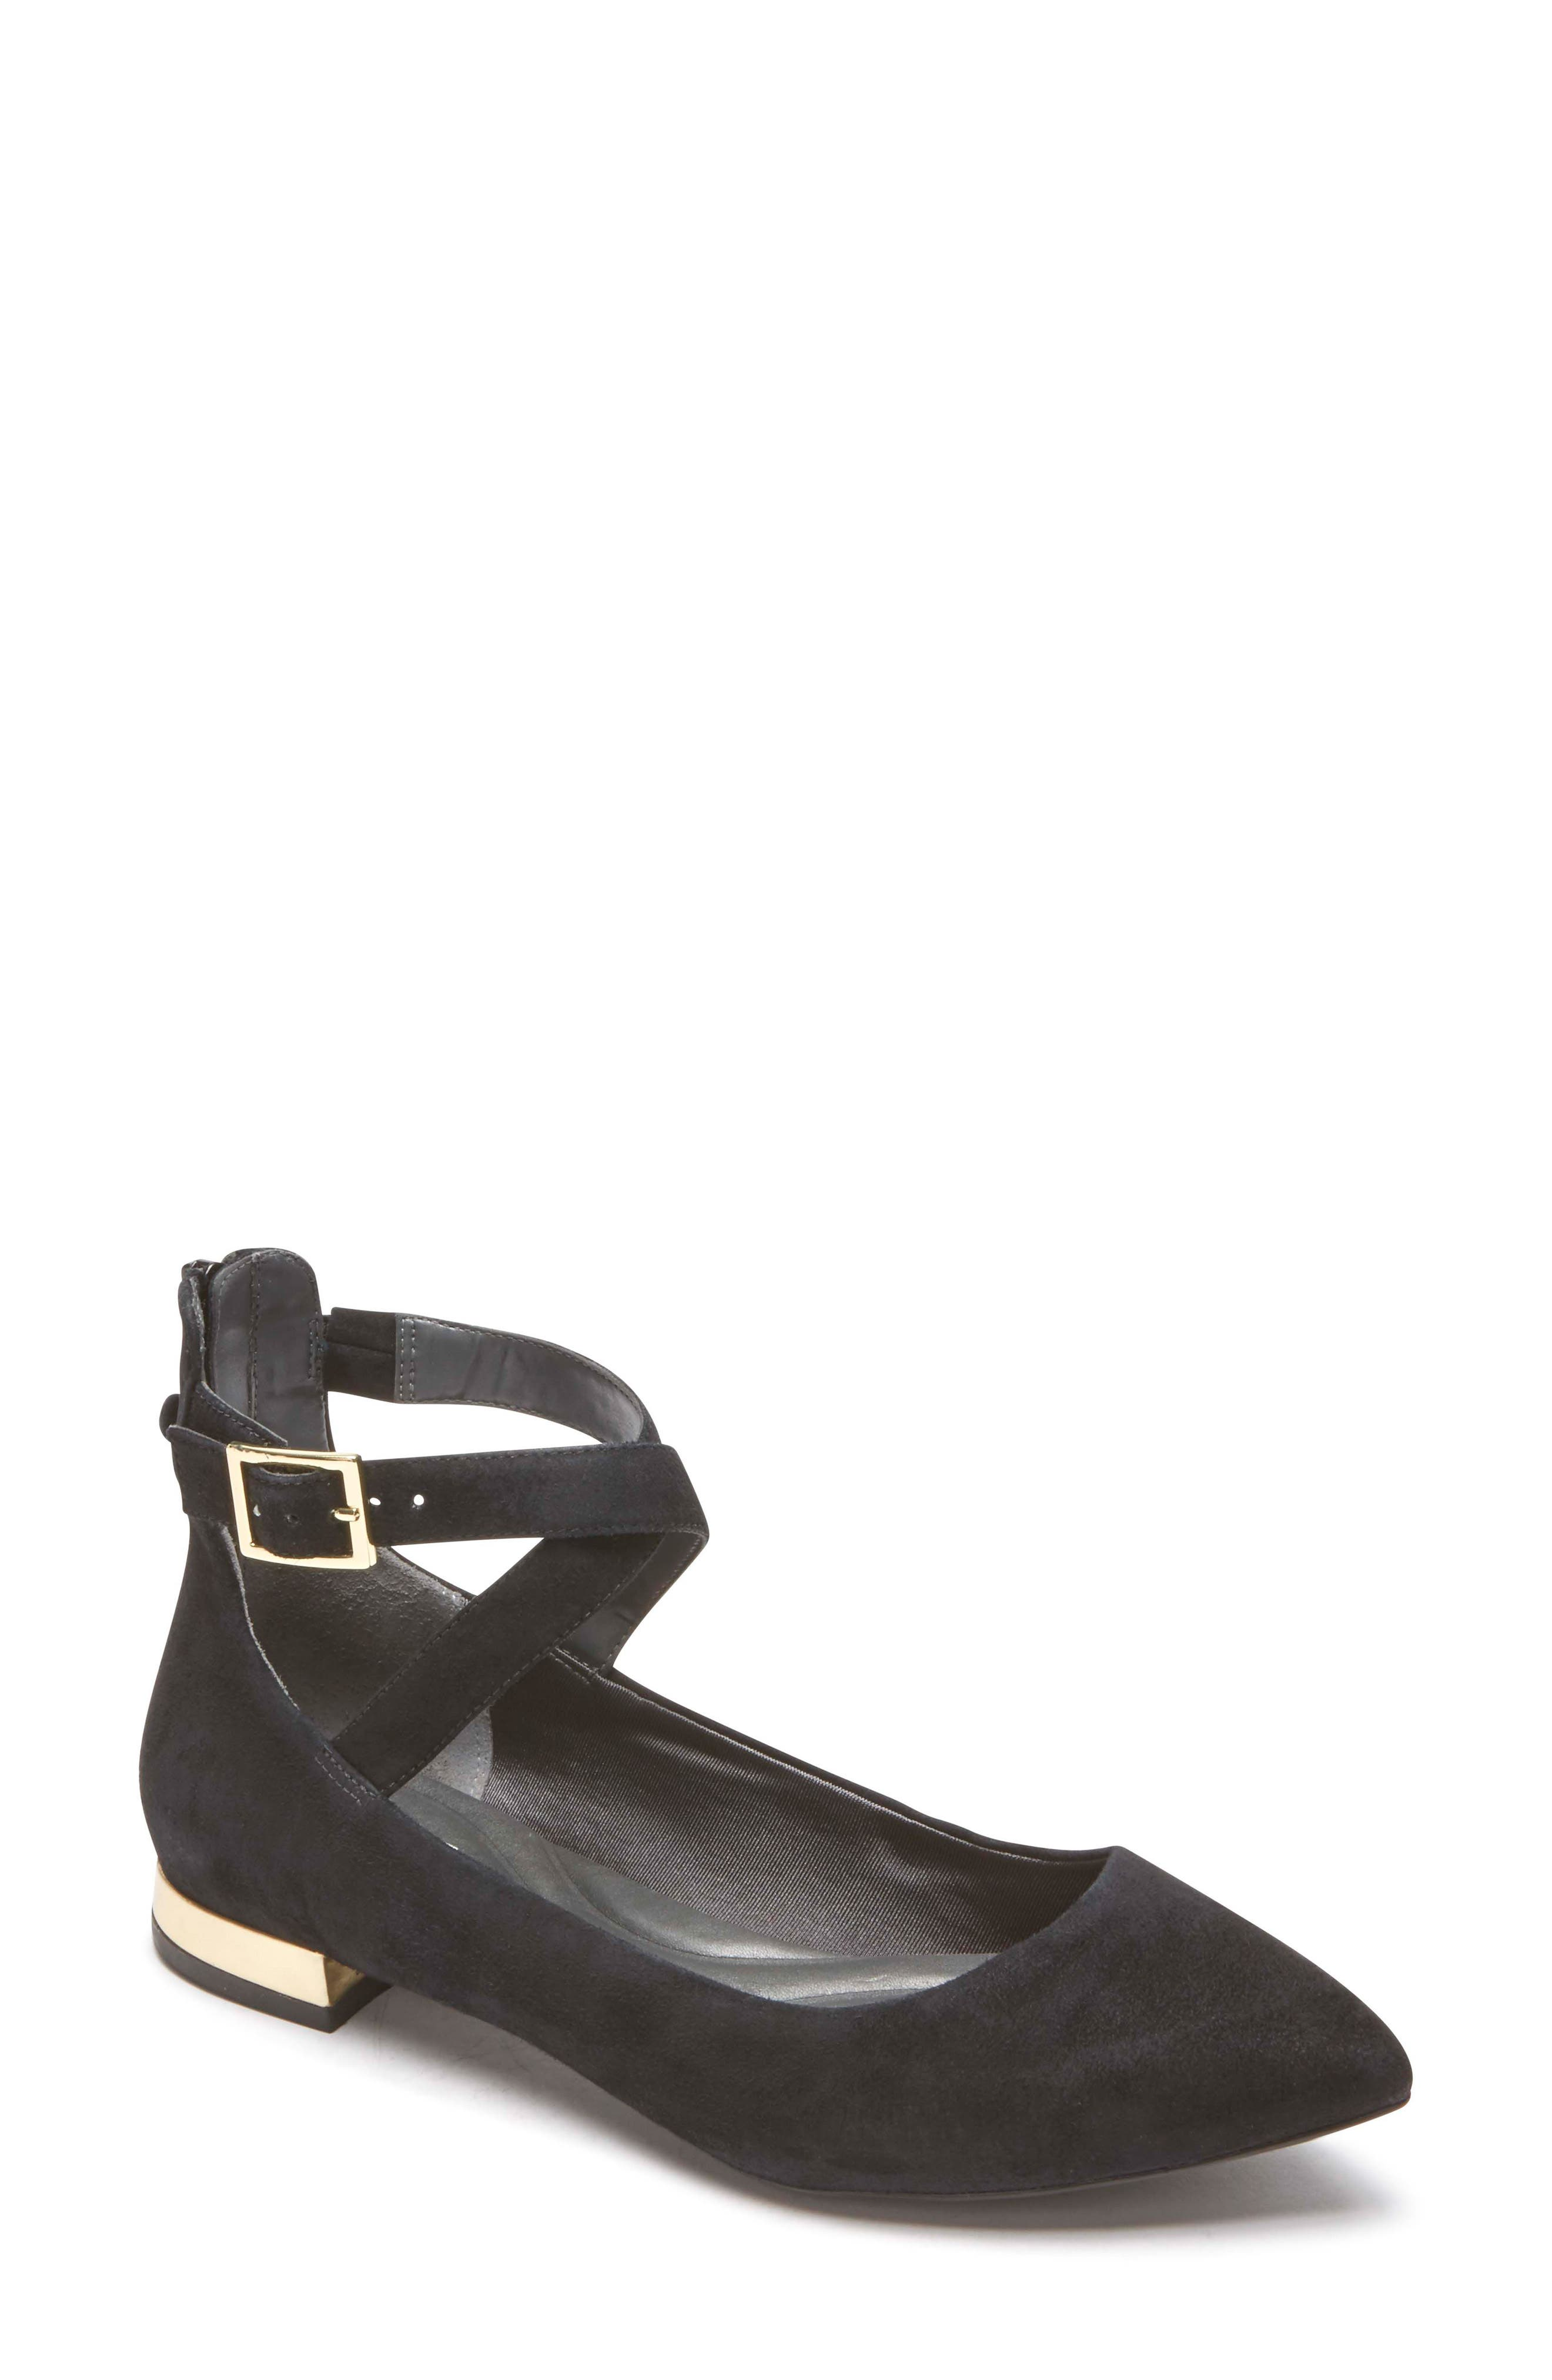 Alternate Image 1 Selected - Rockport Total Motion® Zuly Luxe Cross Strap Flat (Women)